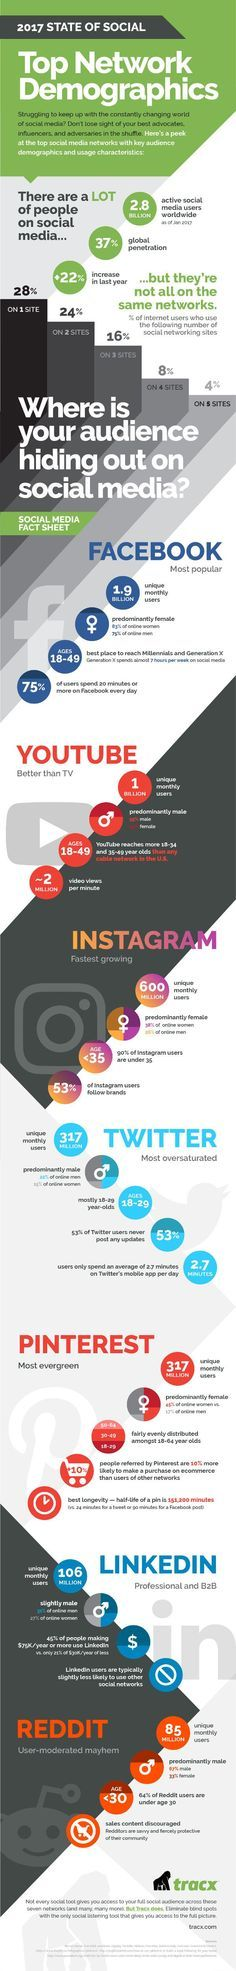 Demographics of the Top 7 Social Networks [Infographic]